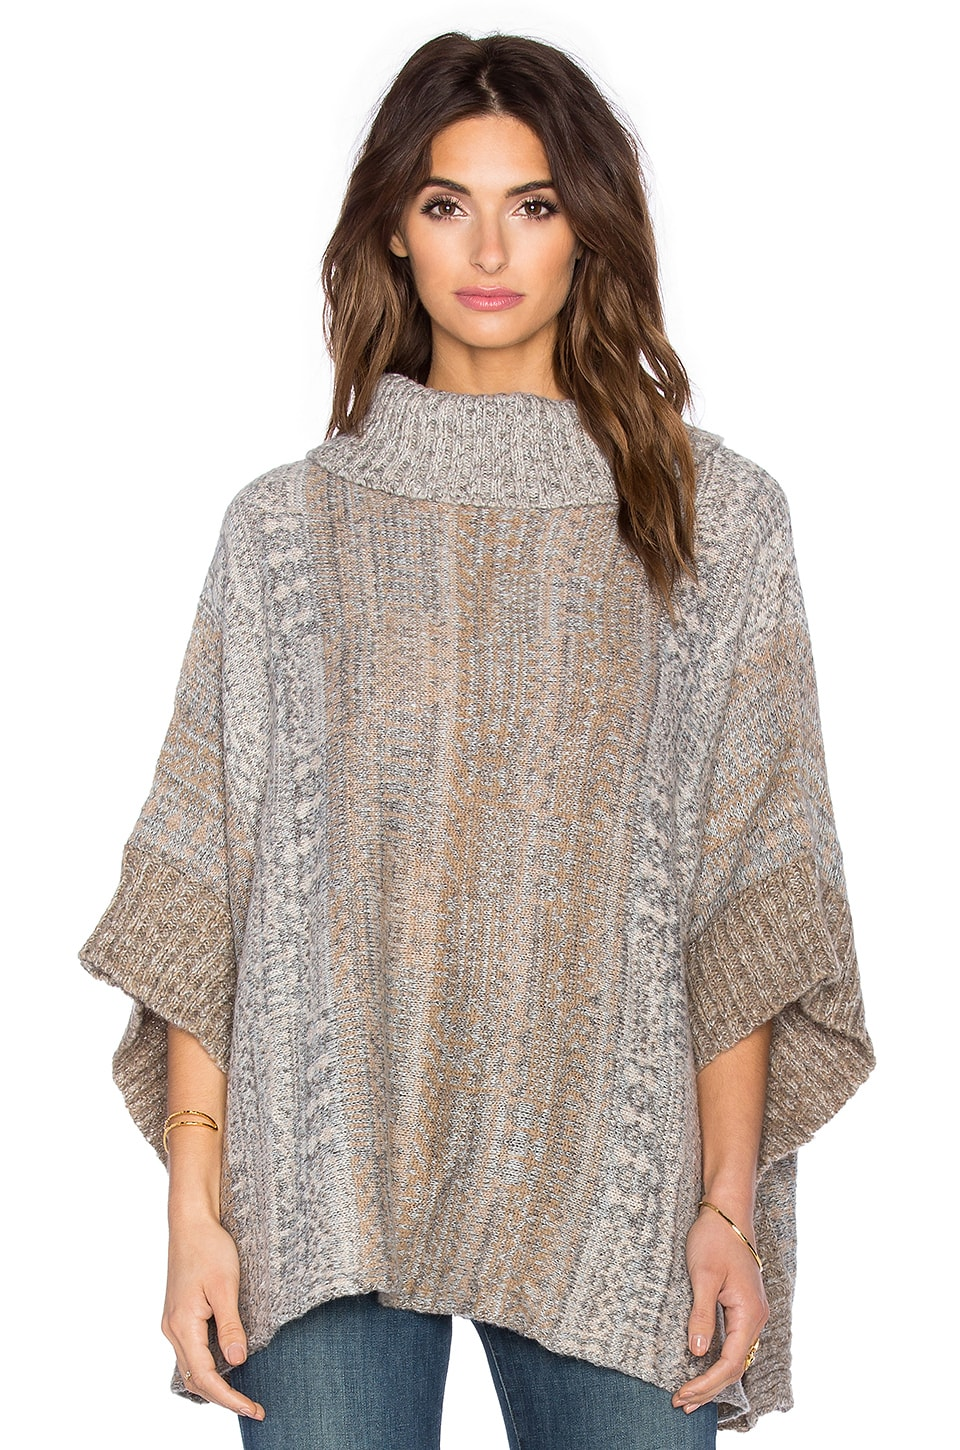 Splendid Snowfall Turtleneck Poncho in Warm Sand Muti